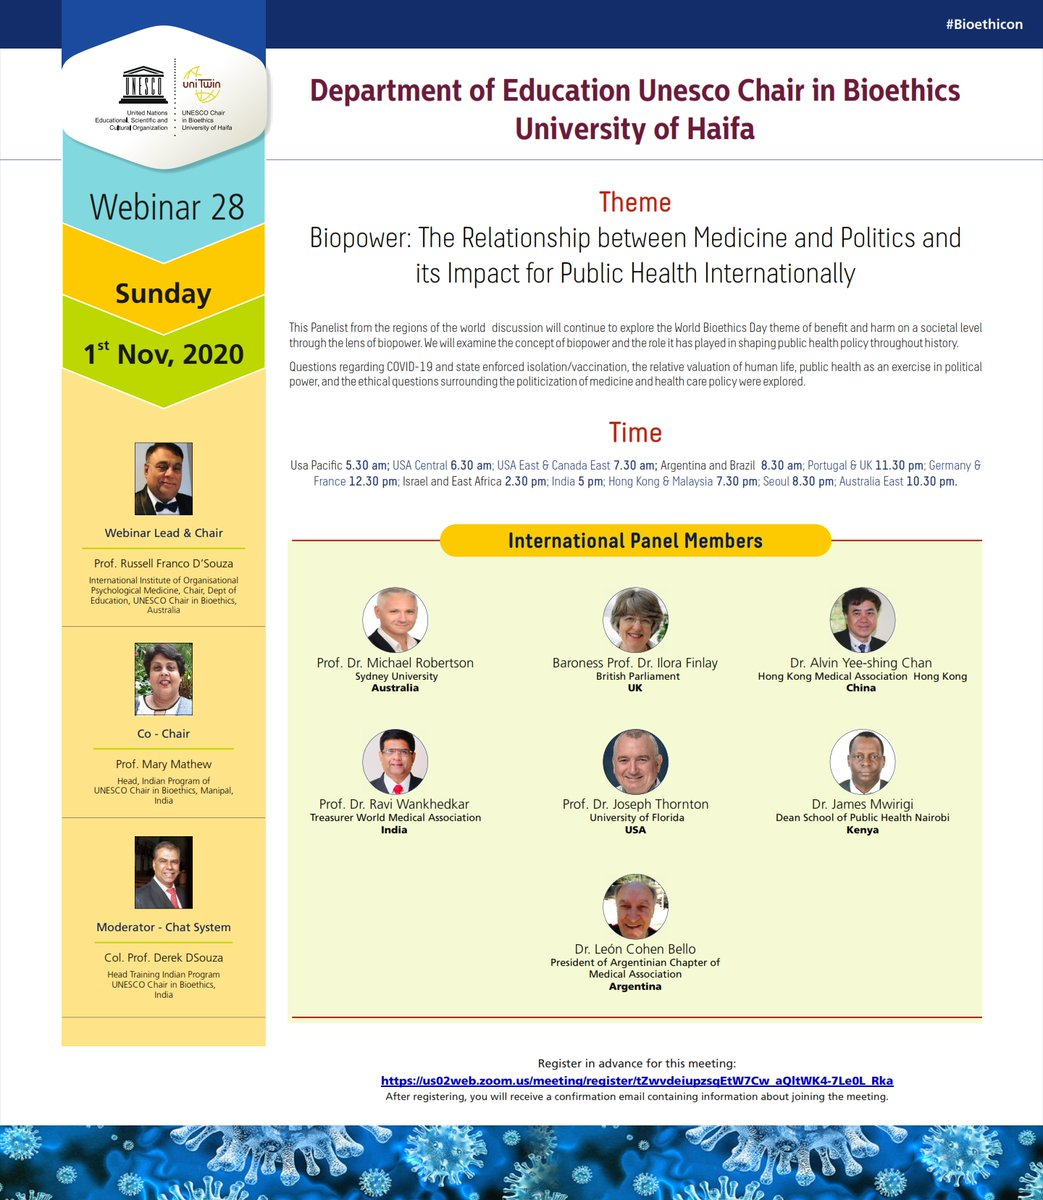 Welcome! You are invited to join a meeting: UNESCO CHAIR 28th WEBINAR  After registering, you will receive a confirmation email about joining the meeting. https://t.co/E0xAdviwx9  #UNESCO #bioethics #policies #medicines #publichealth #COVID19 #lockdown #Qurantine #Webinar https://t.co/oXOpWShv2J